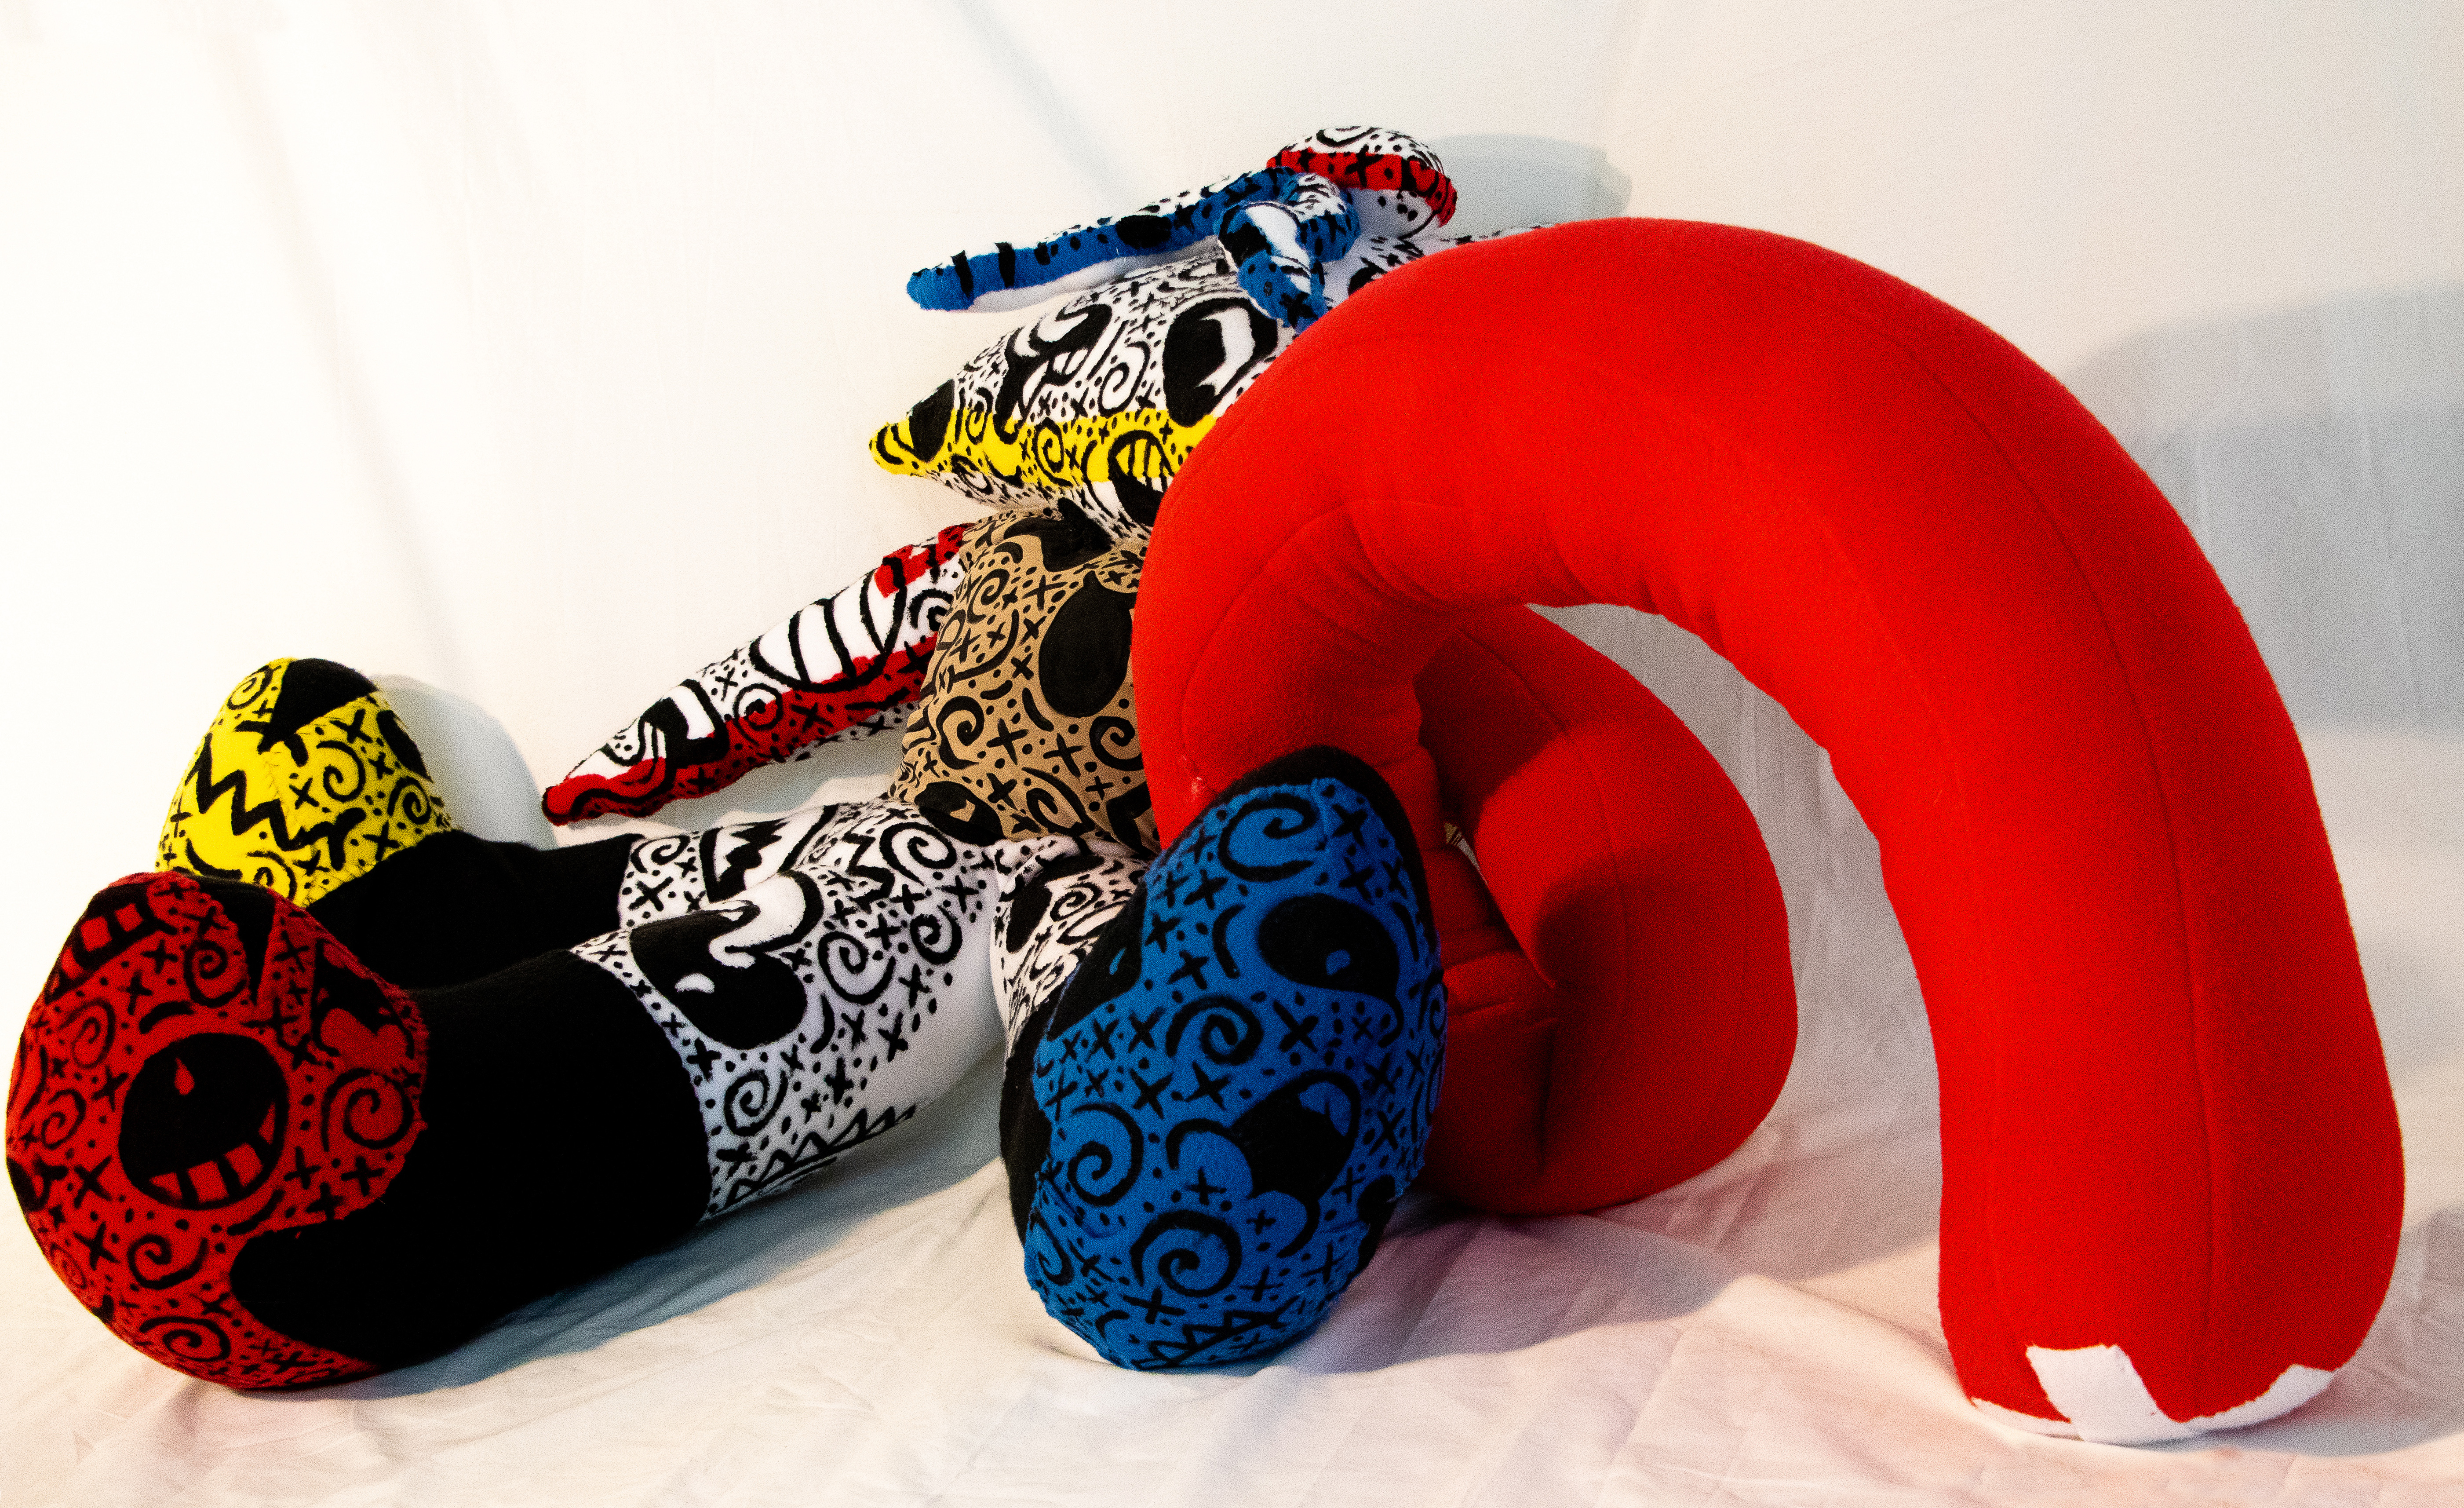 A photograph of a fabric sculpture in bright red, yellow and blue with multiple appendages and covered with black markings. Here the solely red piece is arched from the central form.